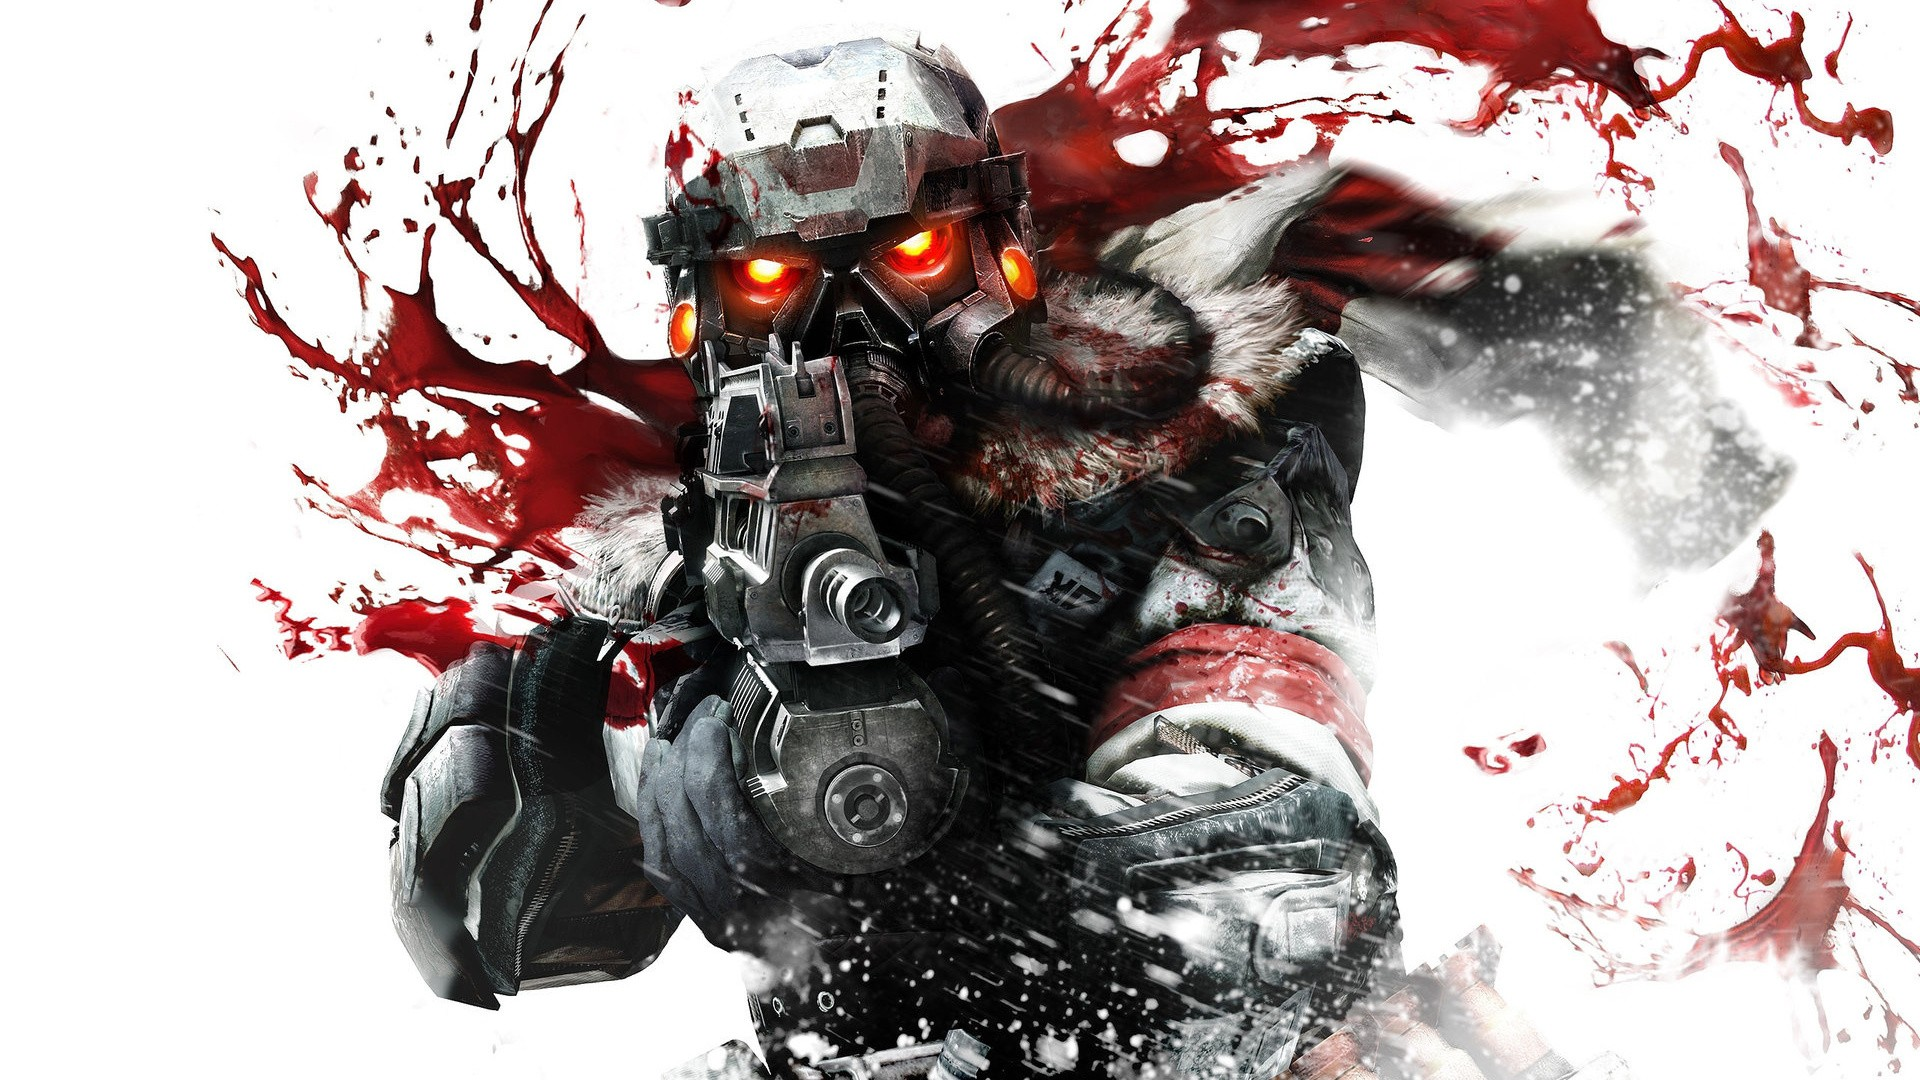 55+ wallpapers hd games ·① download free awesome wallpapers for